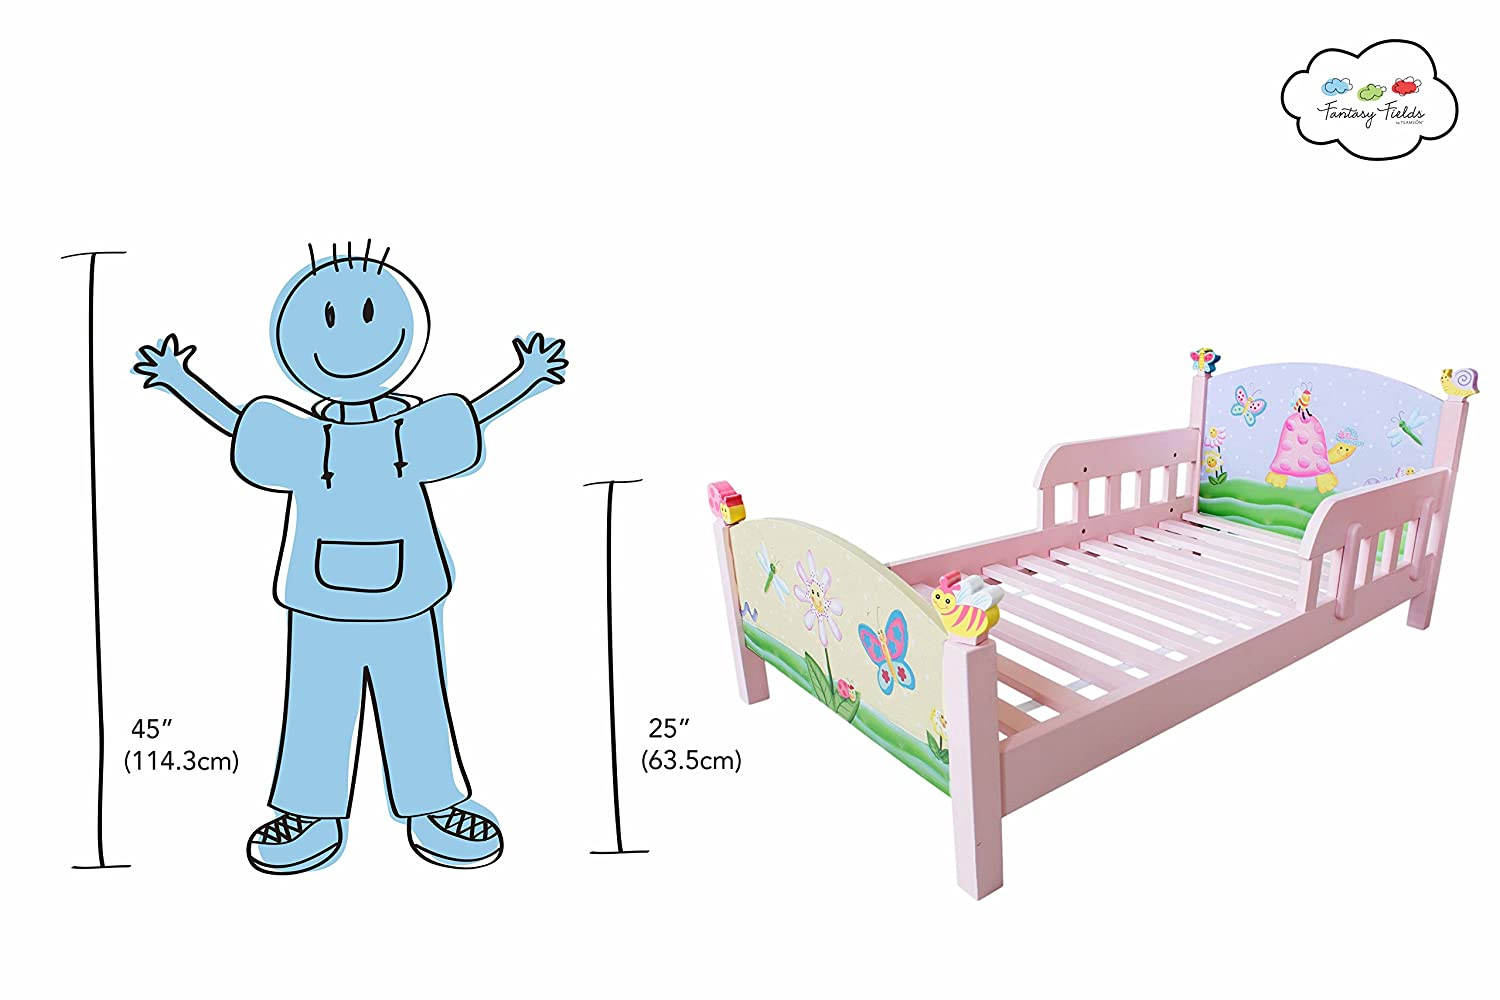 Amazon.com: Teamson Design Corp Fantasy Fields   Magic Garden Thematic  Toddler Bed | Imagination Inspiring Hand Crafted U0026 Hand Painted Details  Non Toxic, ...